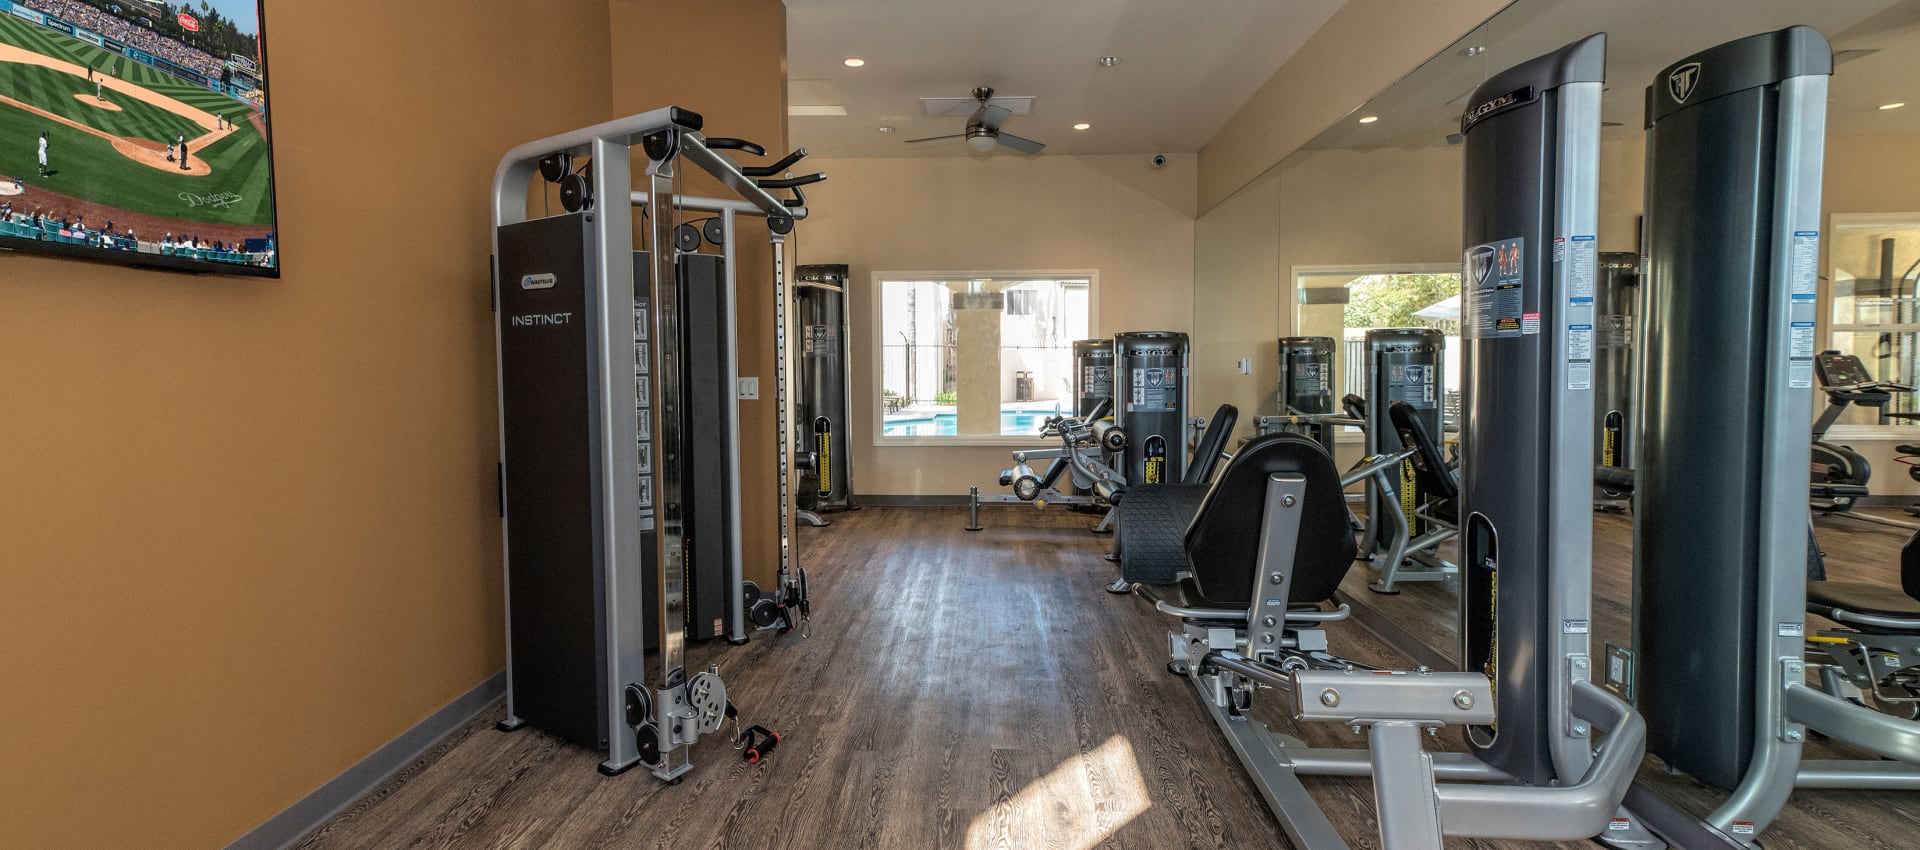 Fitness Center at Shadow Ridge Apartment Homes in Simi Valley, California